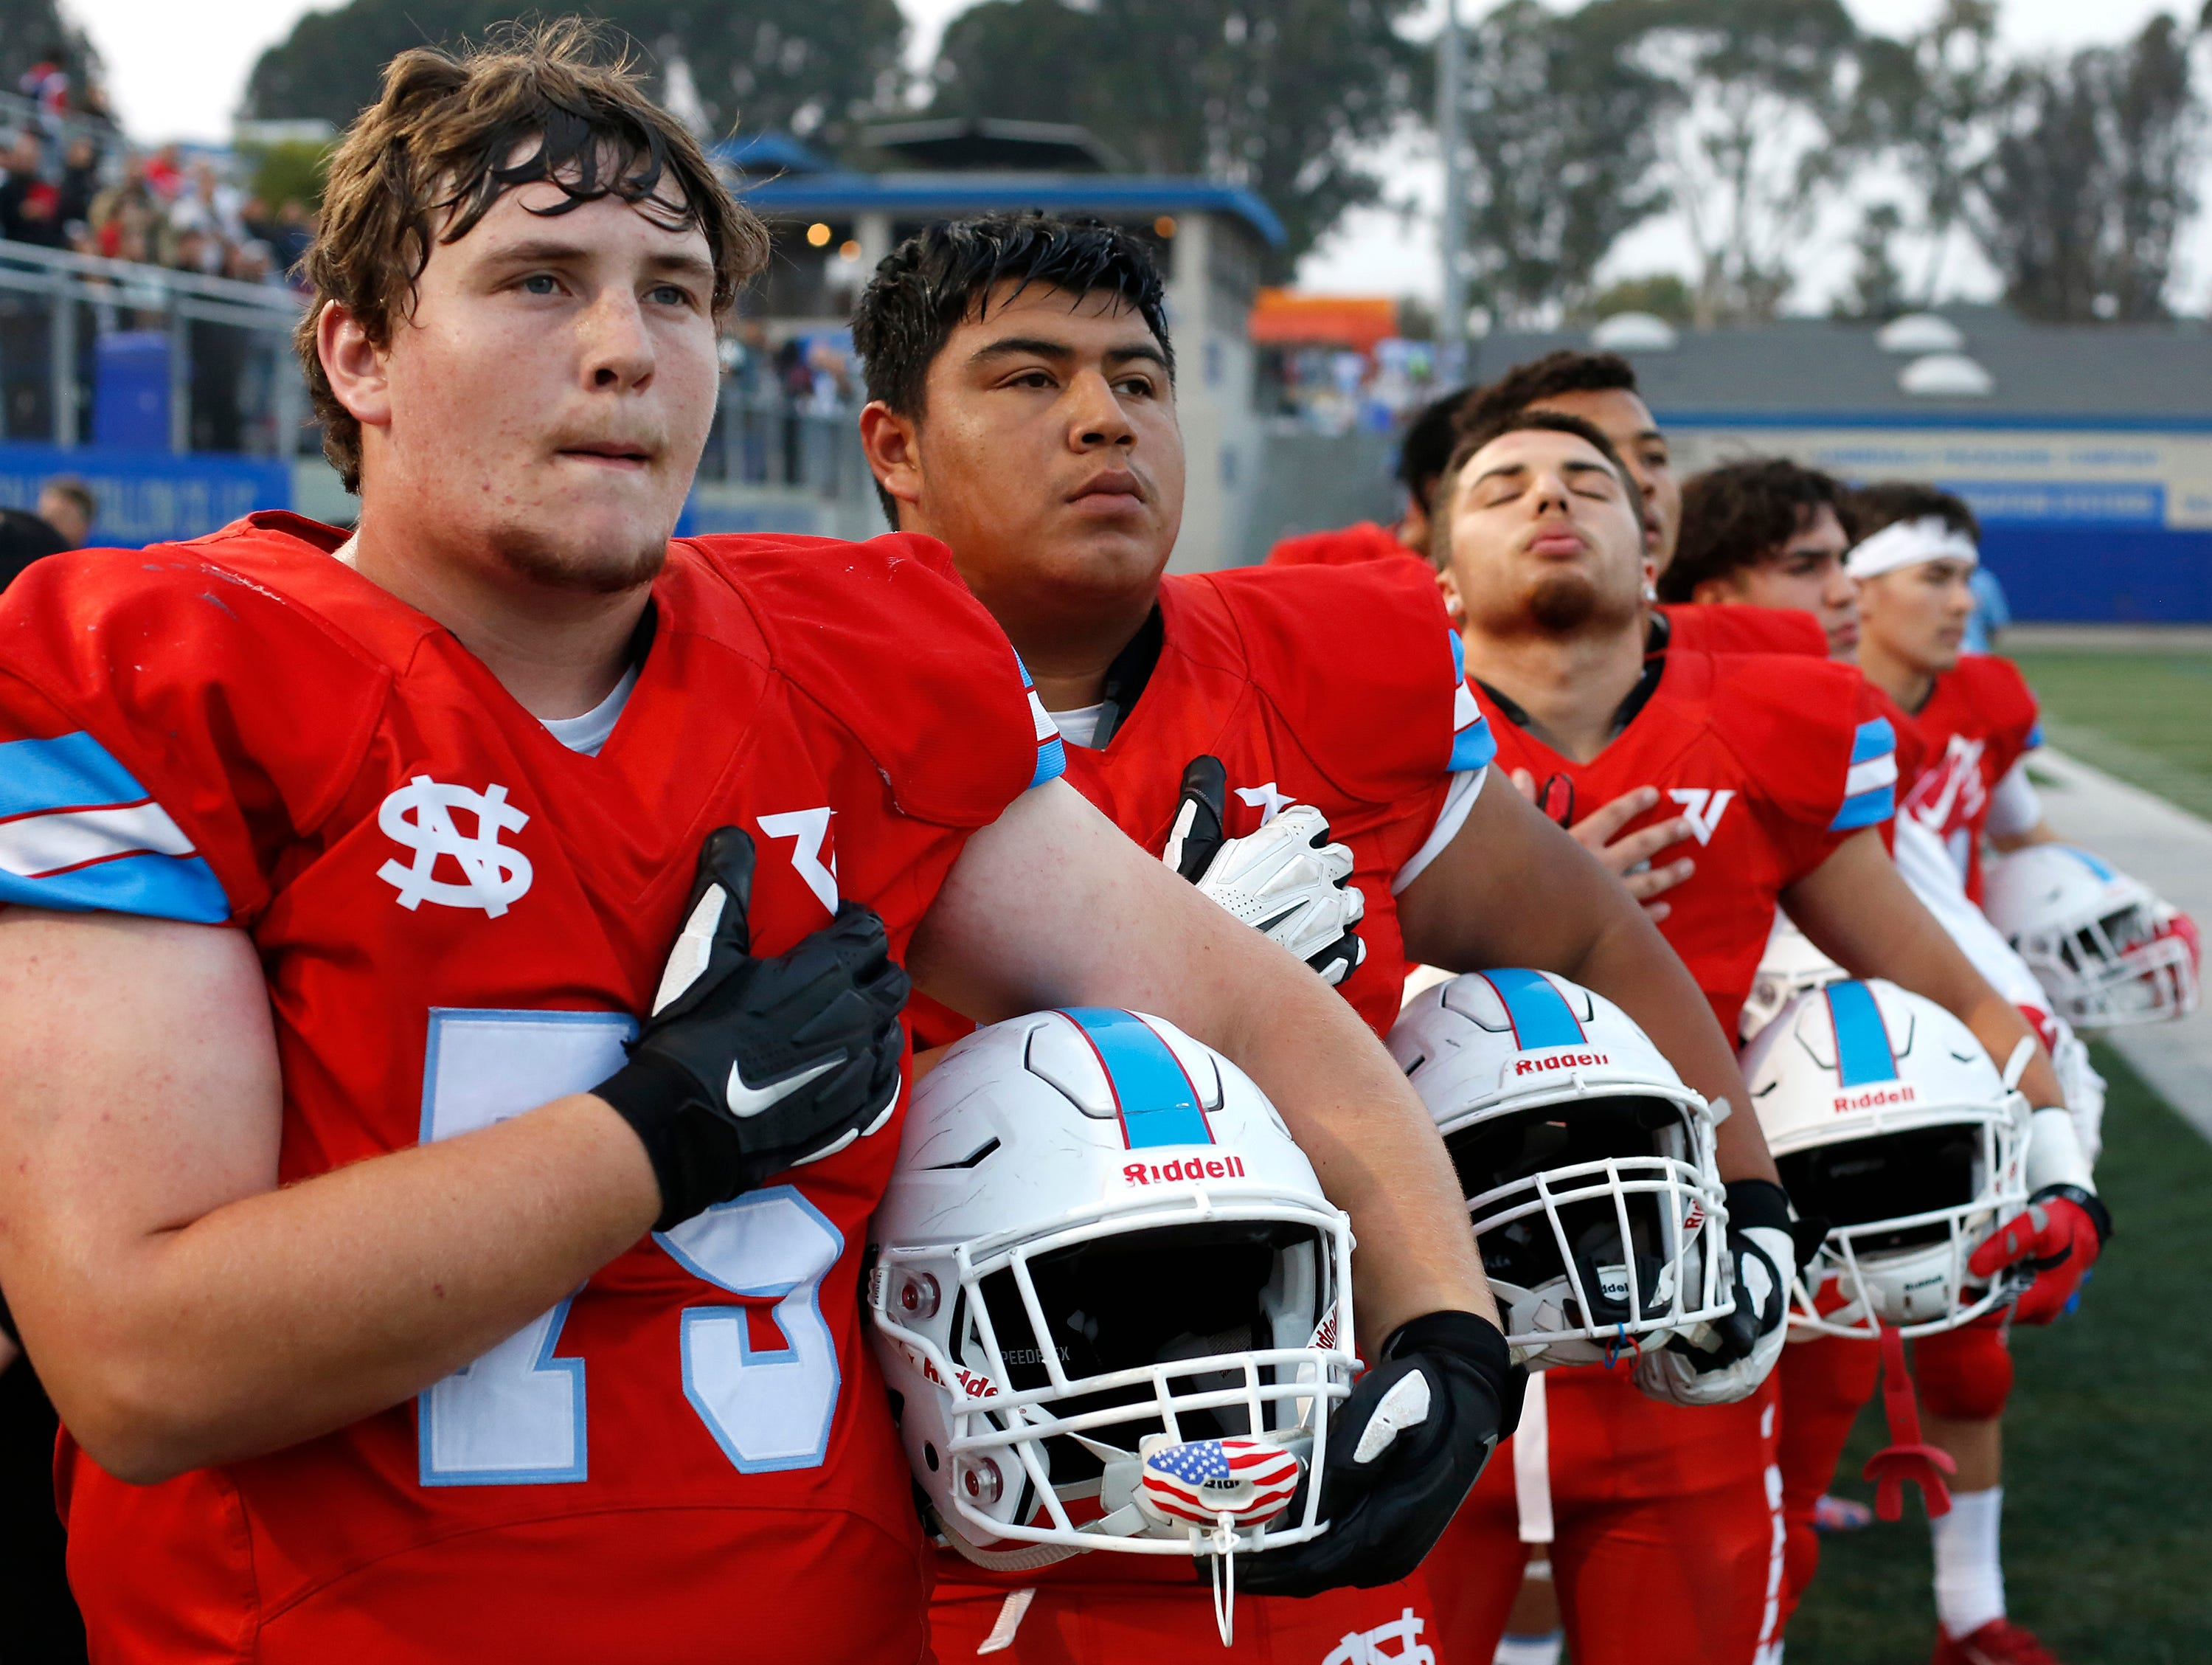 North Salinas players listen to the national Anthem before taking the field against North Monterey County during football at Rabobank Stadium in Salinas on Thursday August 23, 2018.